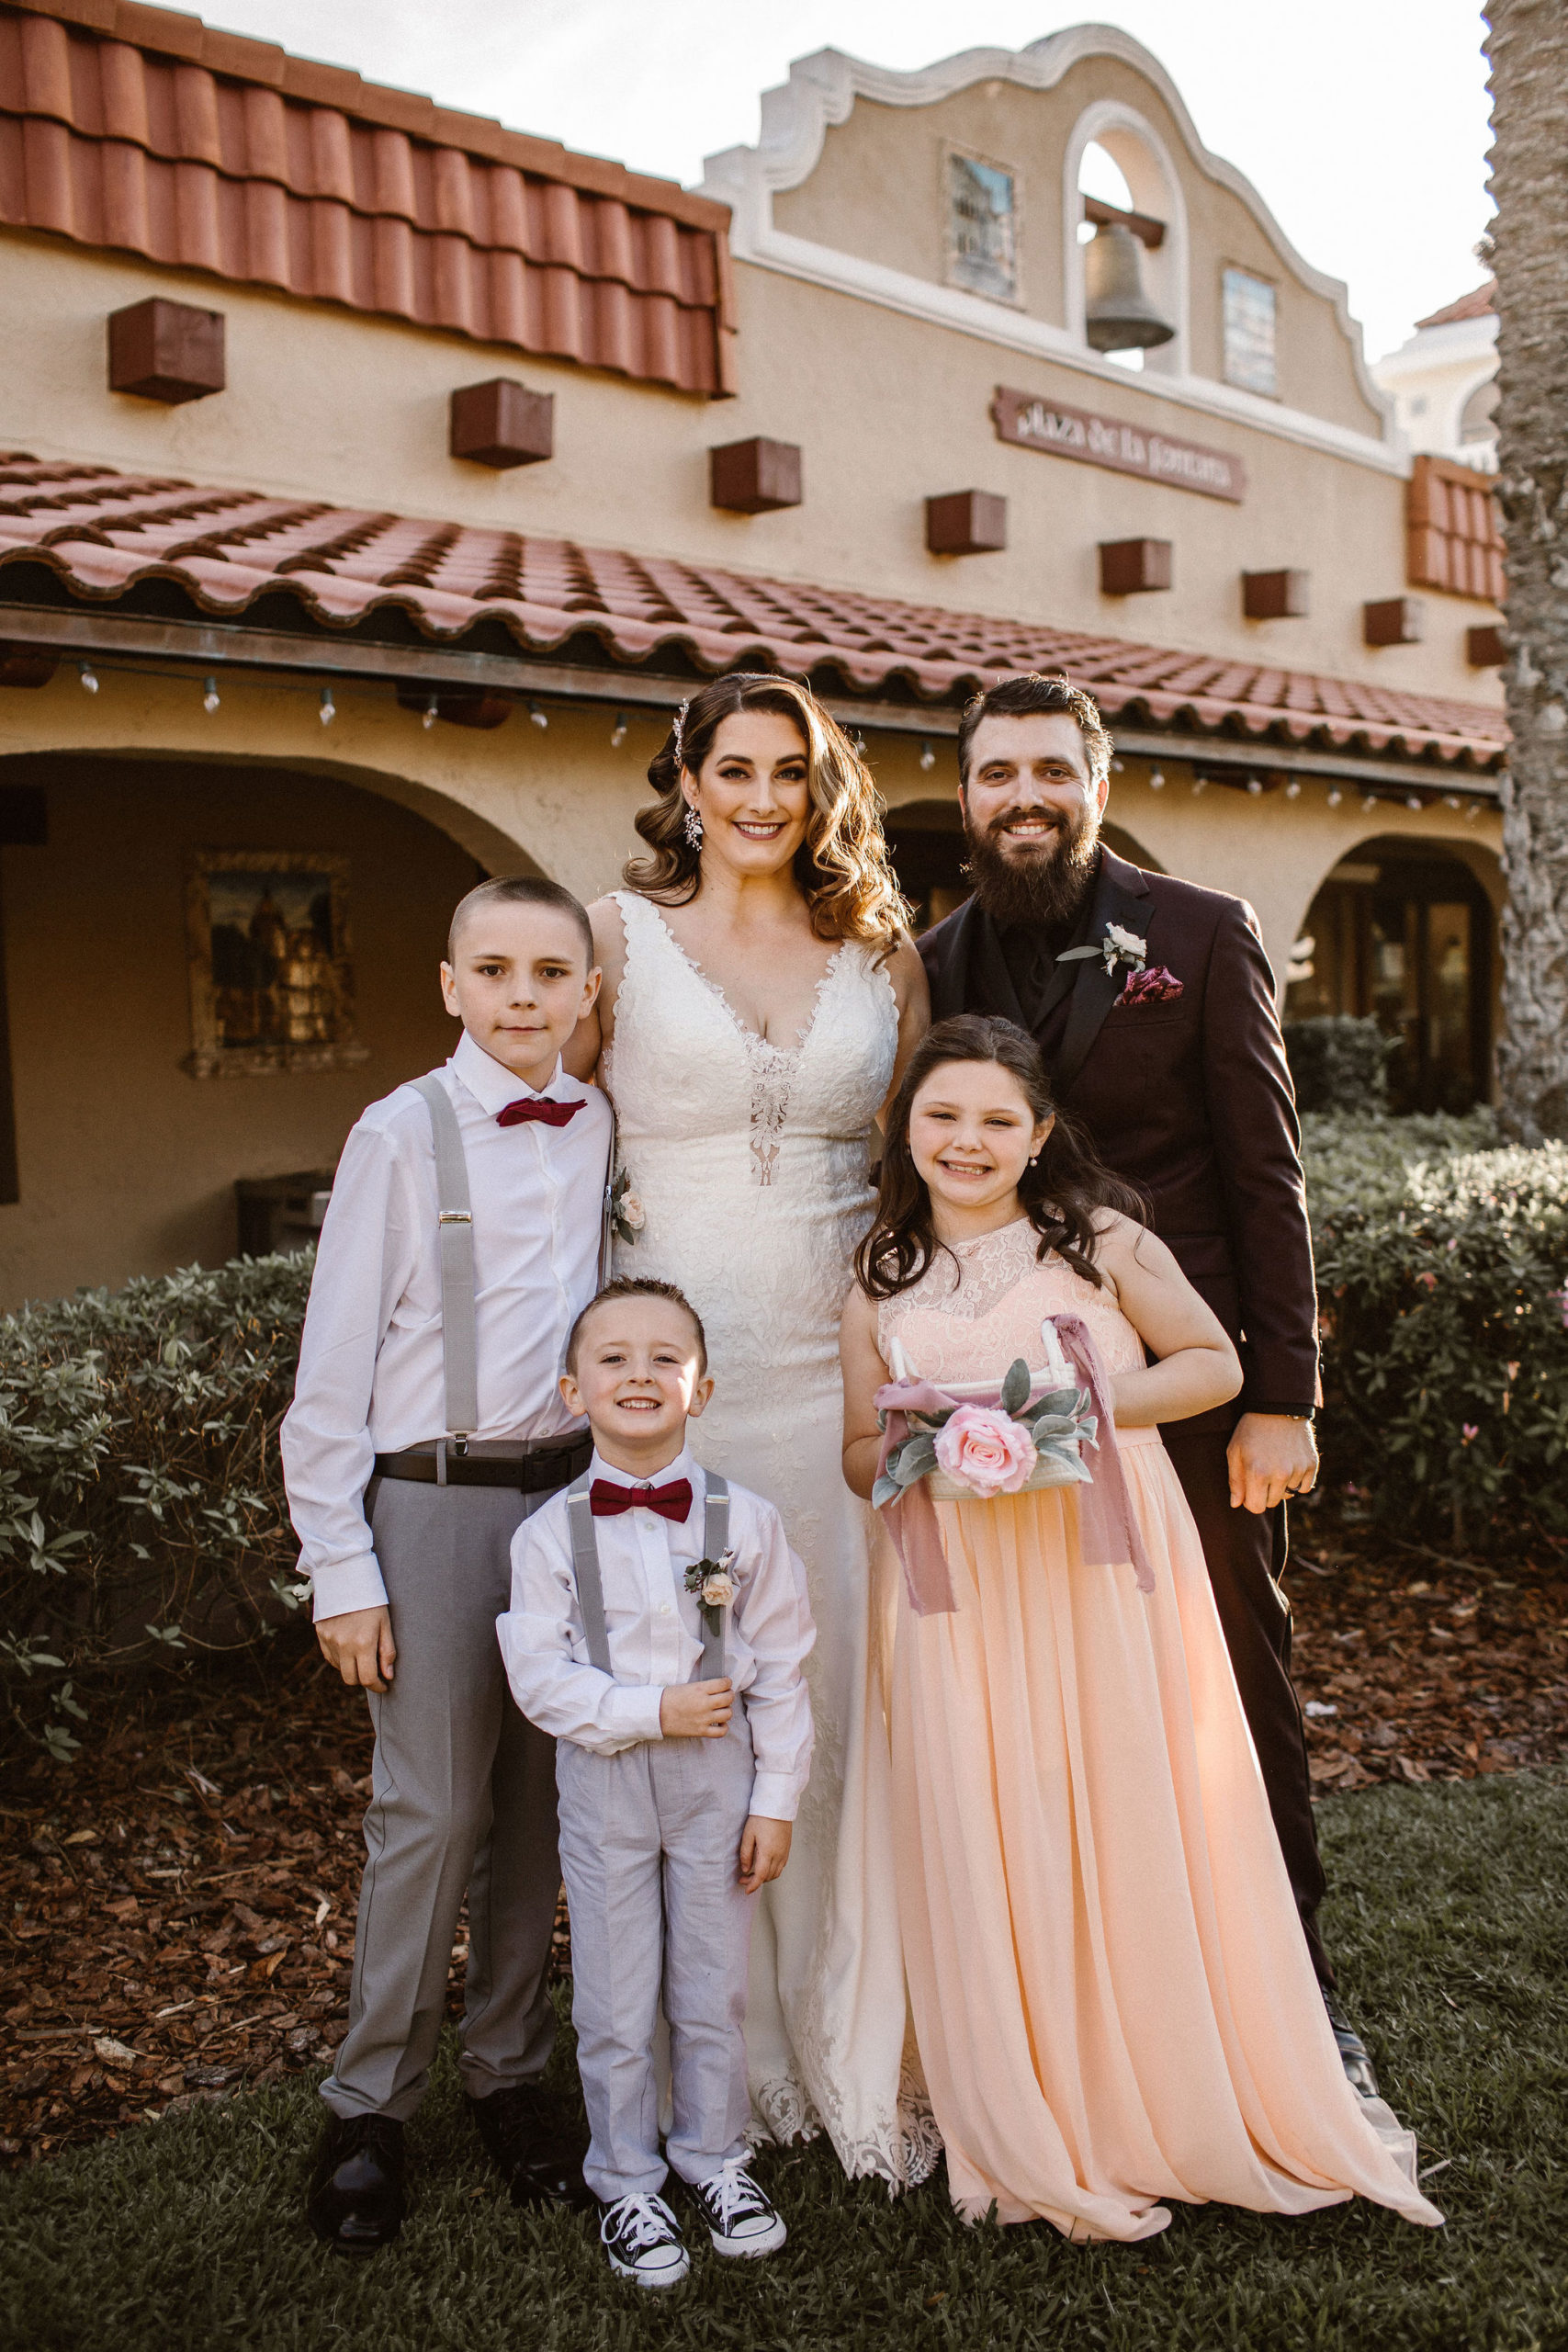 bride and groom with flower girl and ring bearers